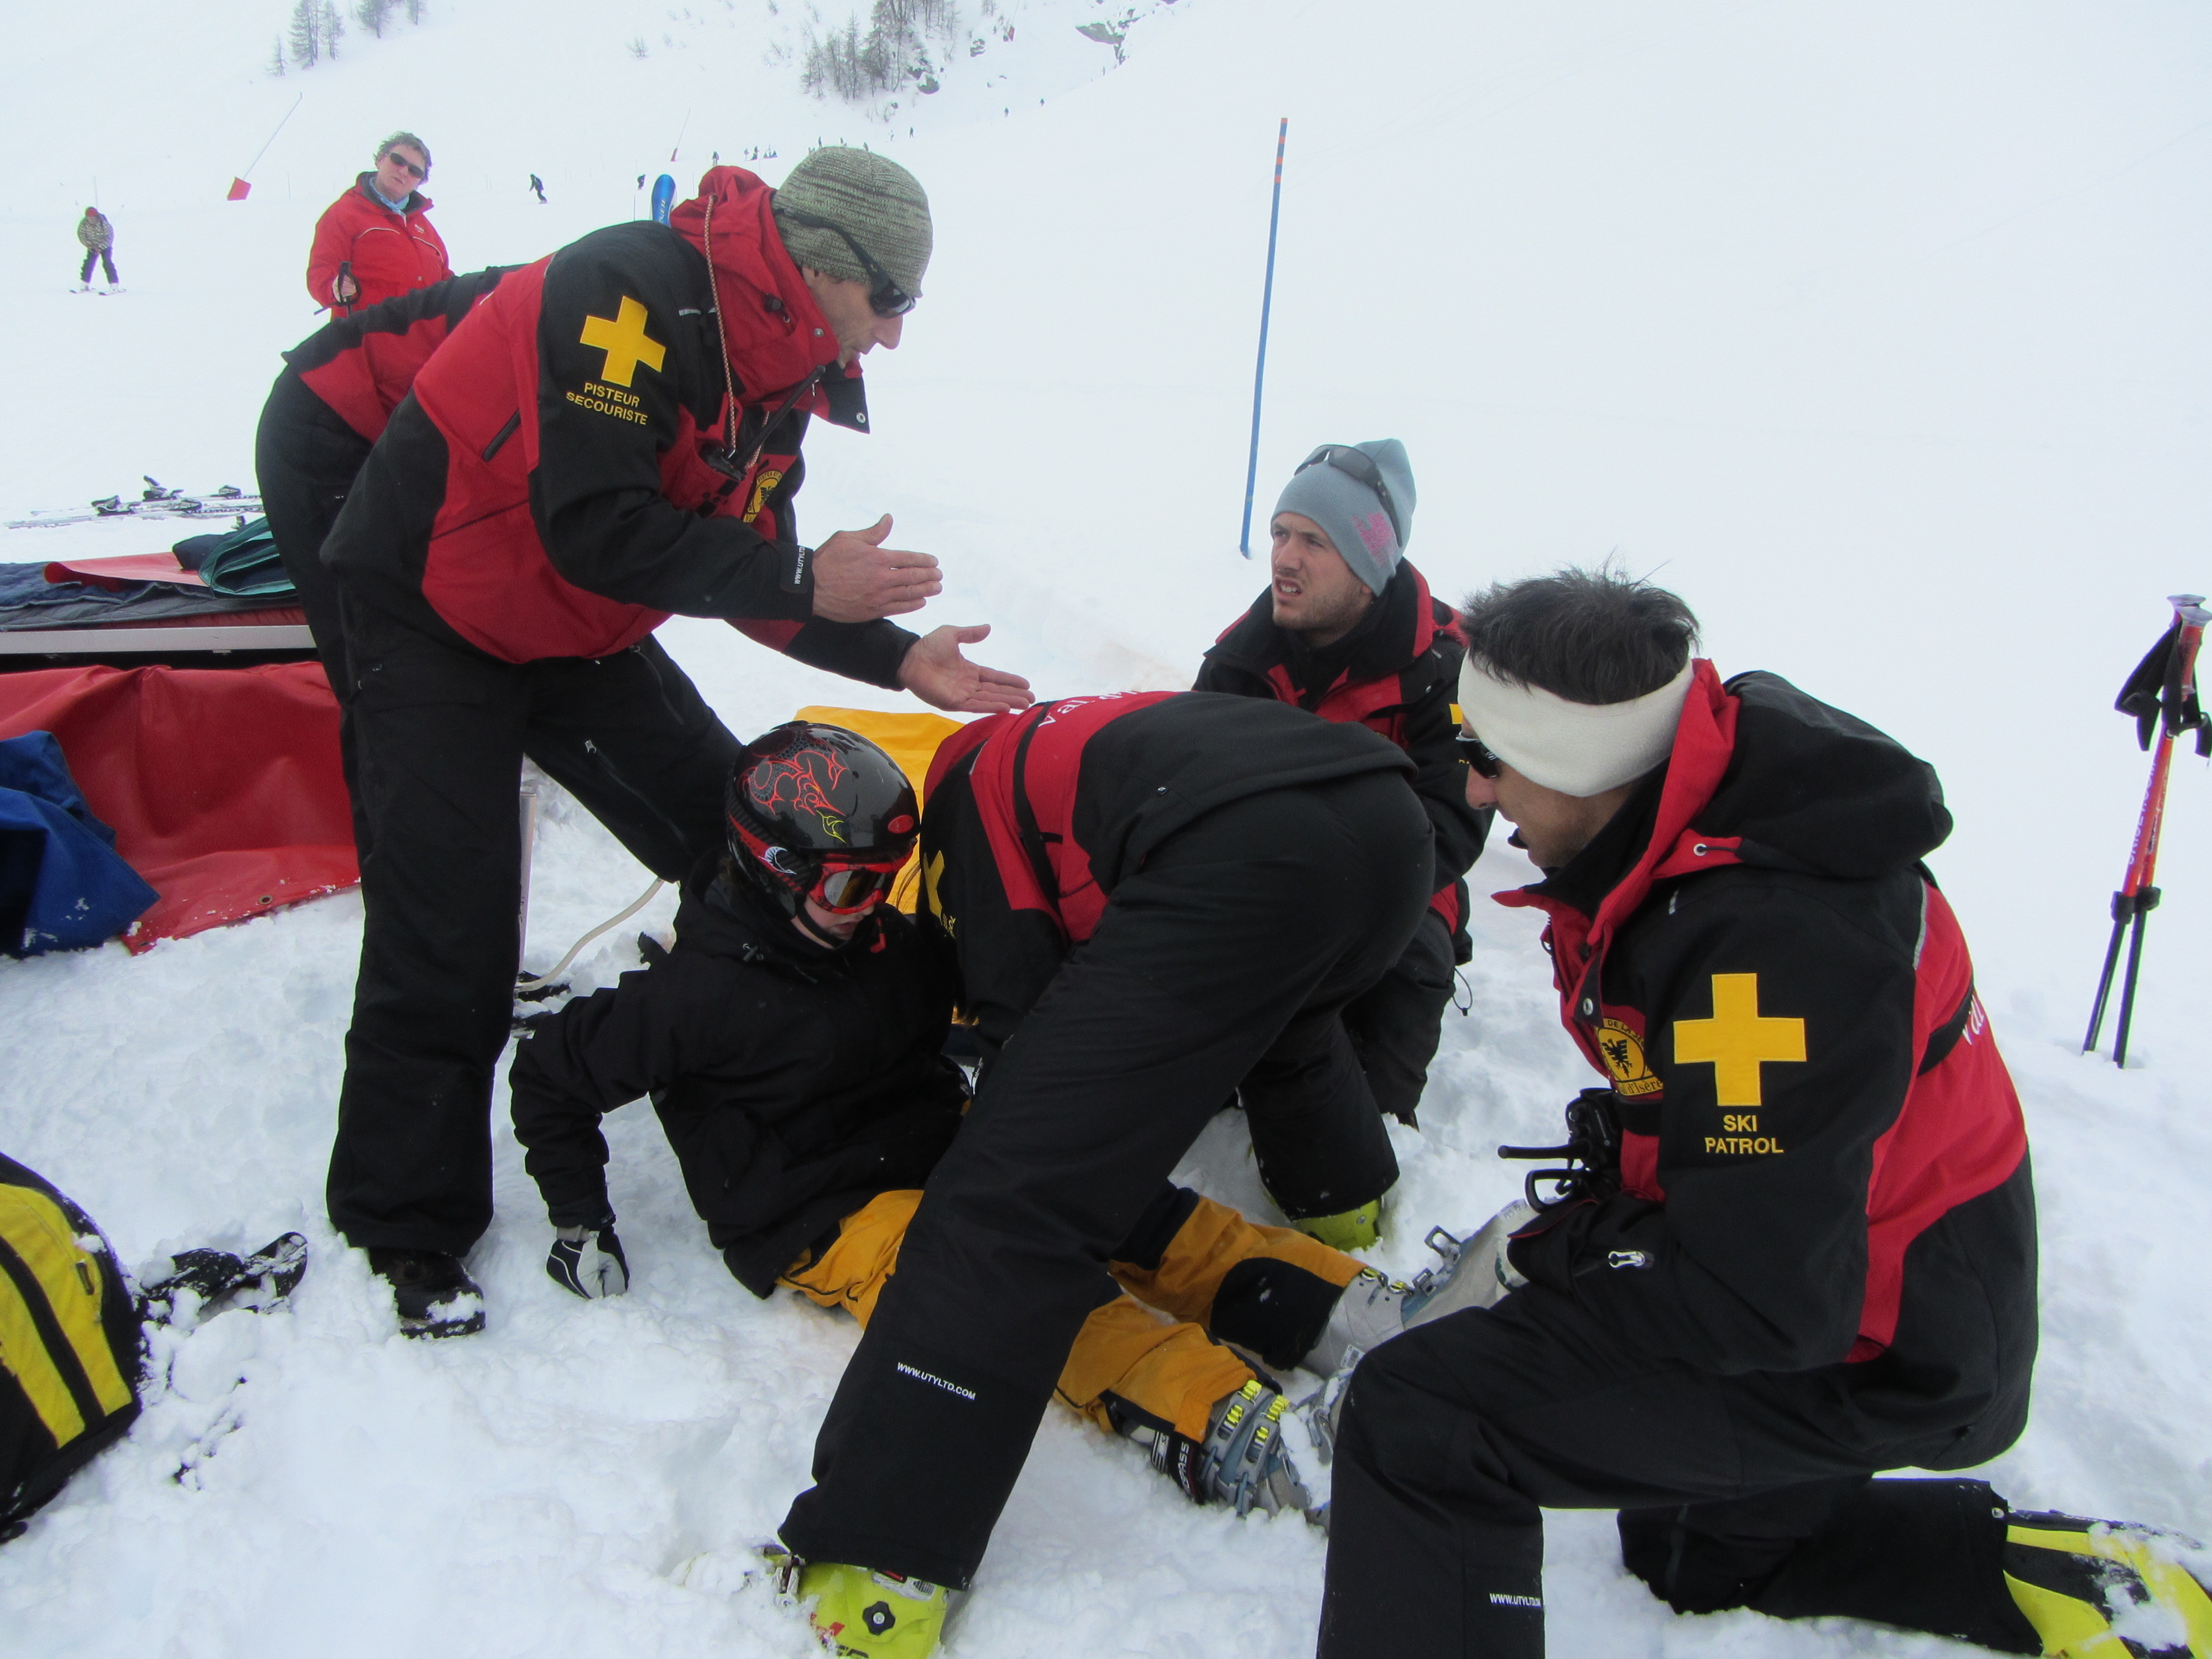 How to avoid knee injury while skiing